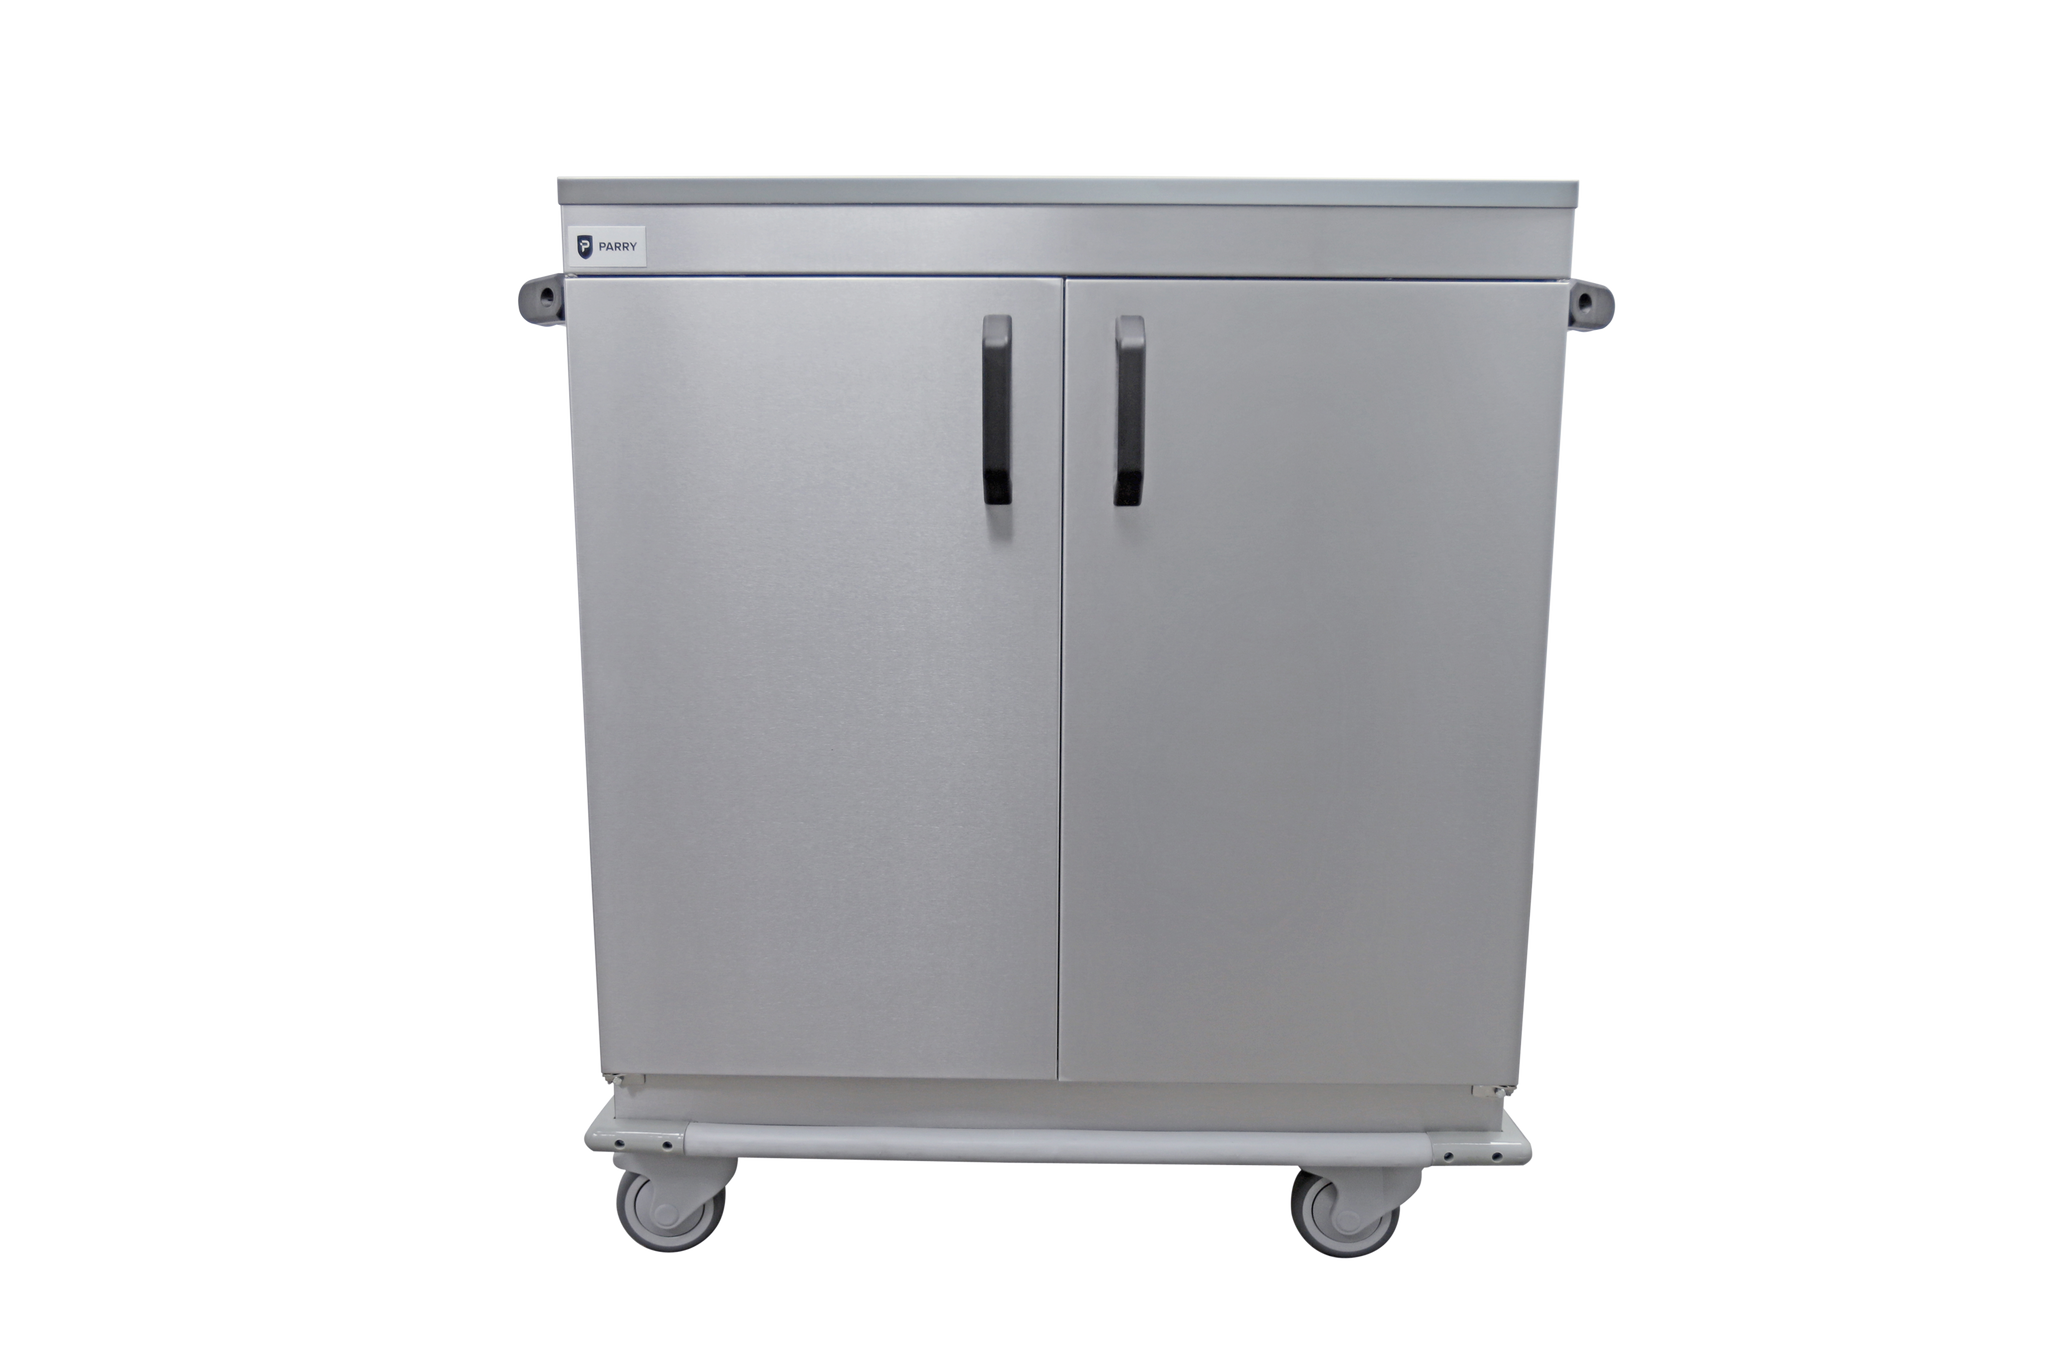 Parry Stainless Hinged Door Mobile Hot Cupboard